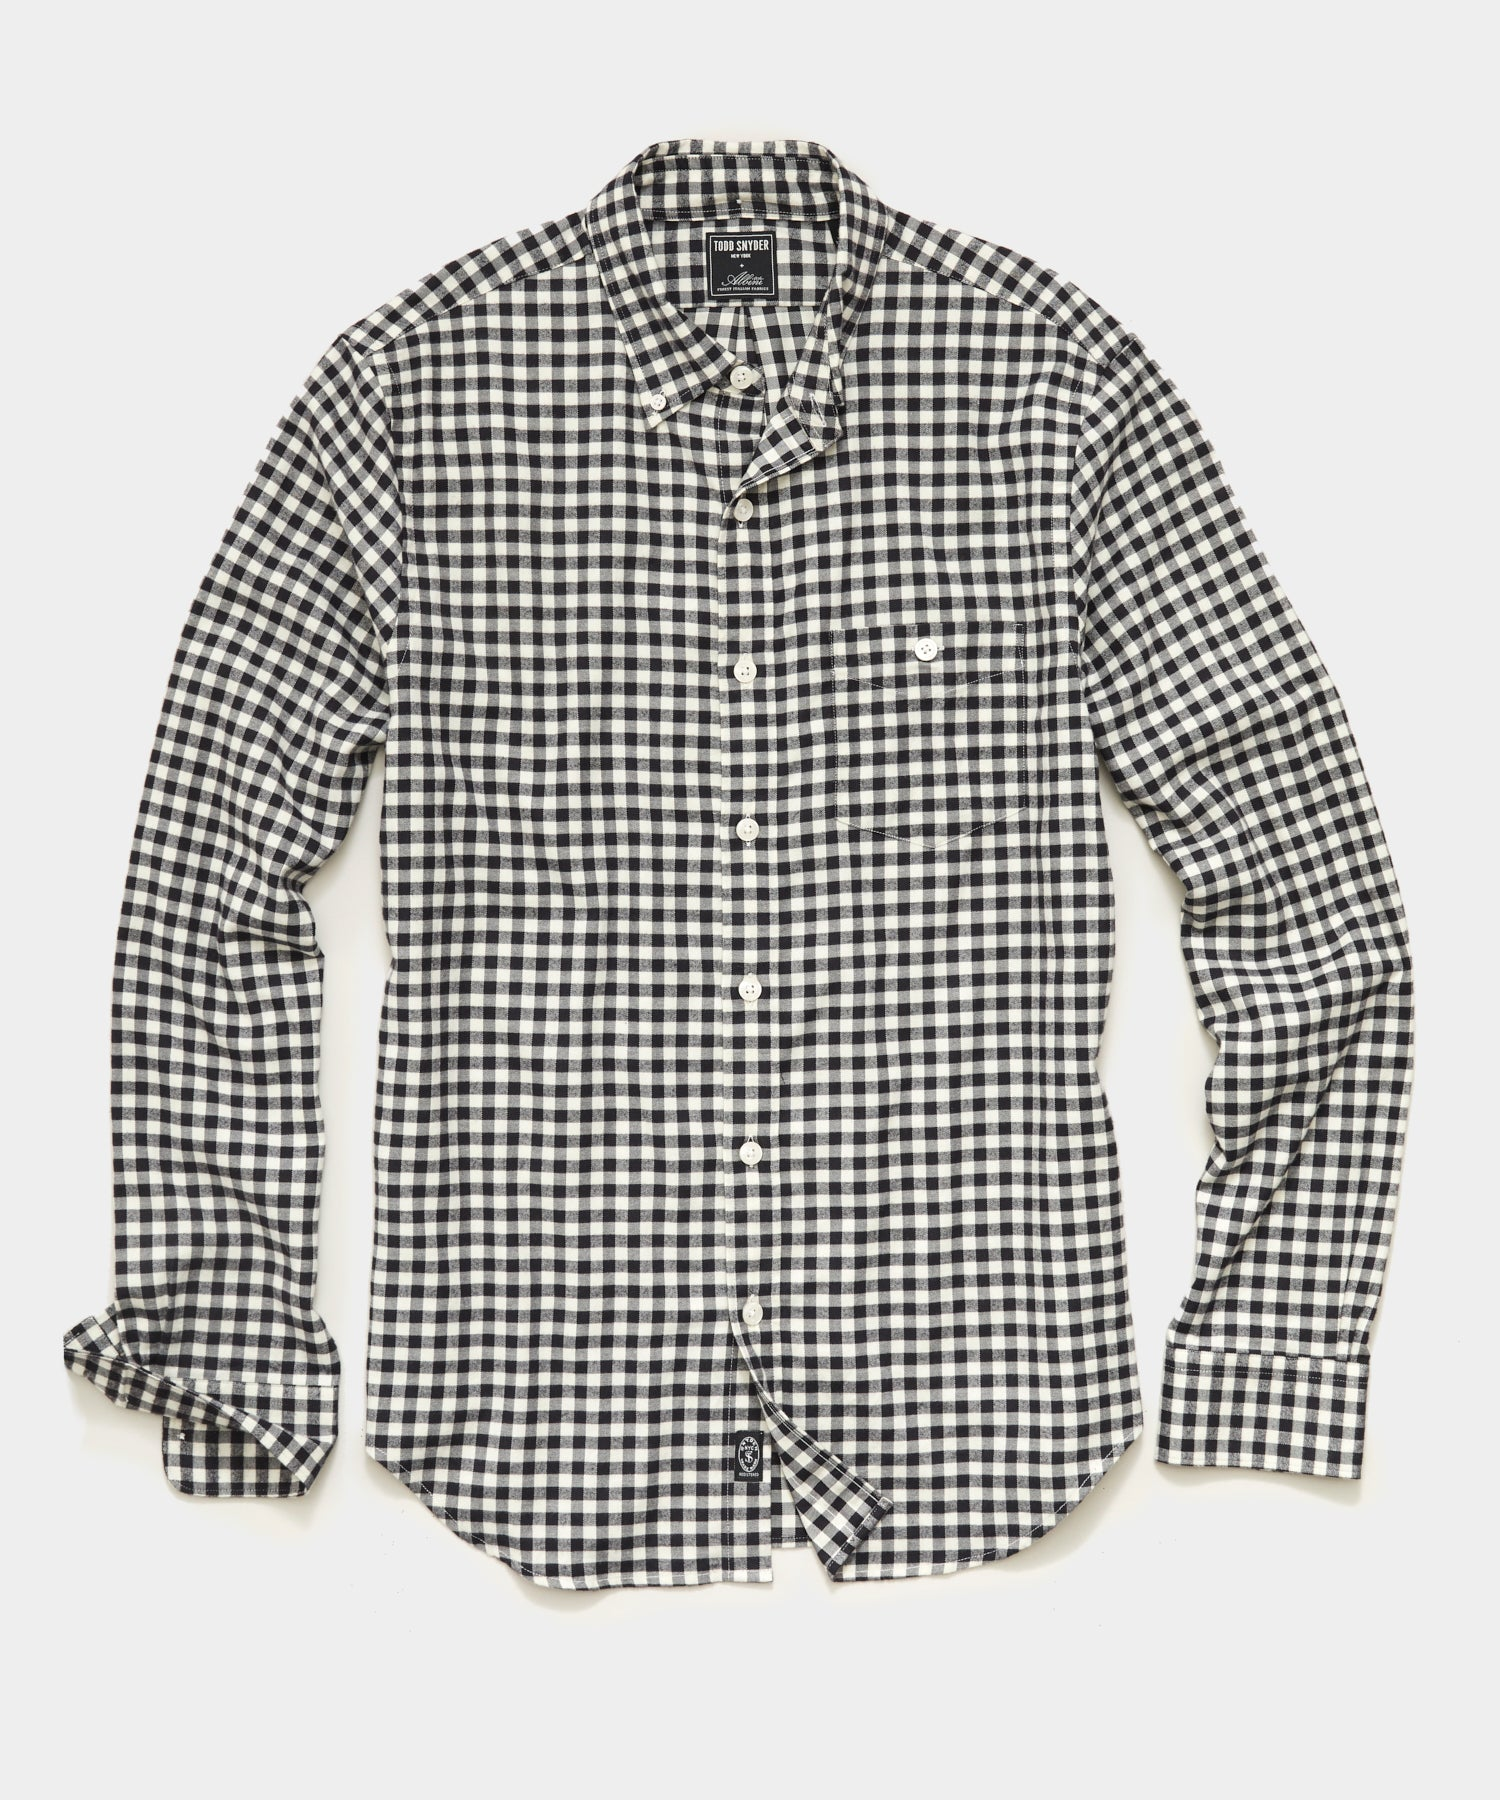 Thomas Mason Gingham Brushed Twill Shirt in Black White